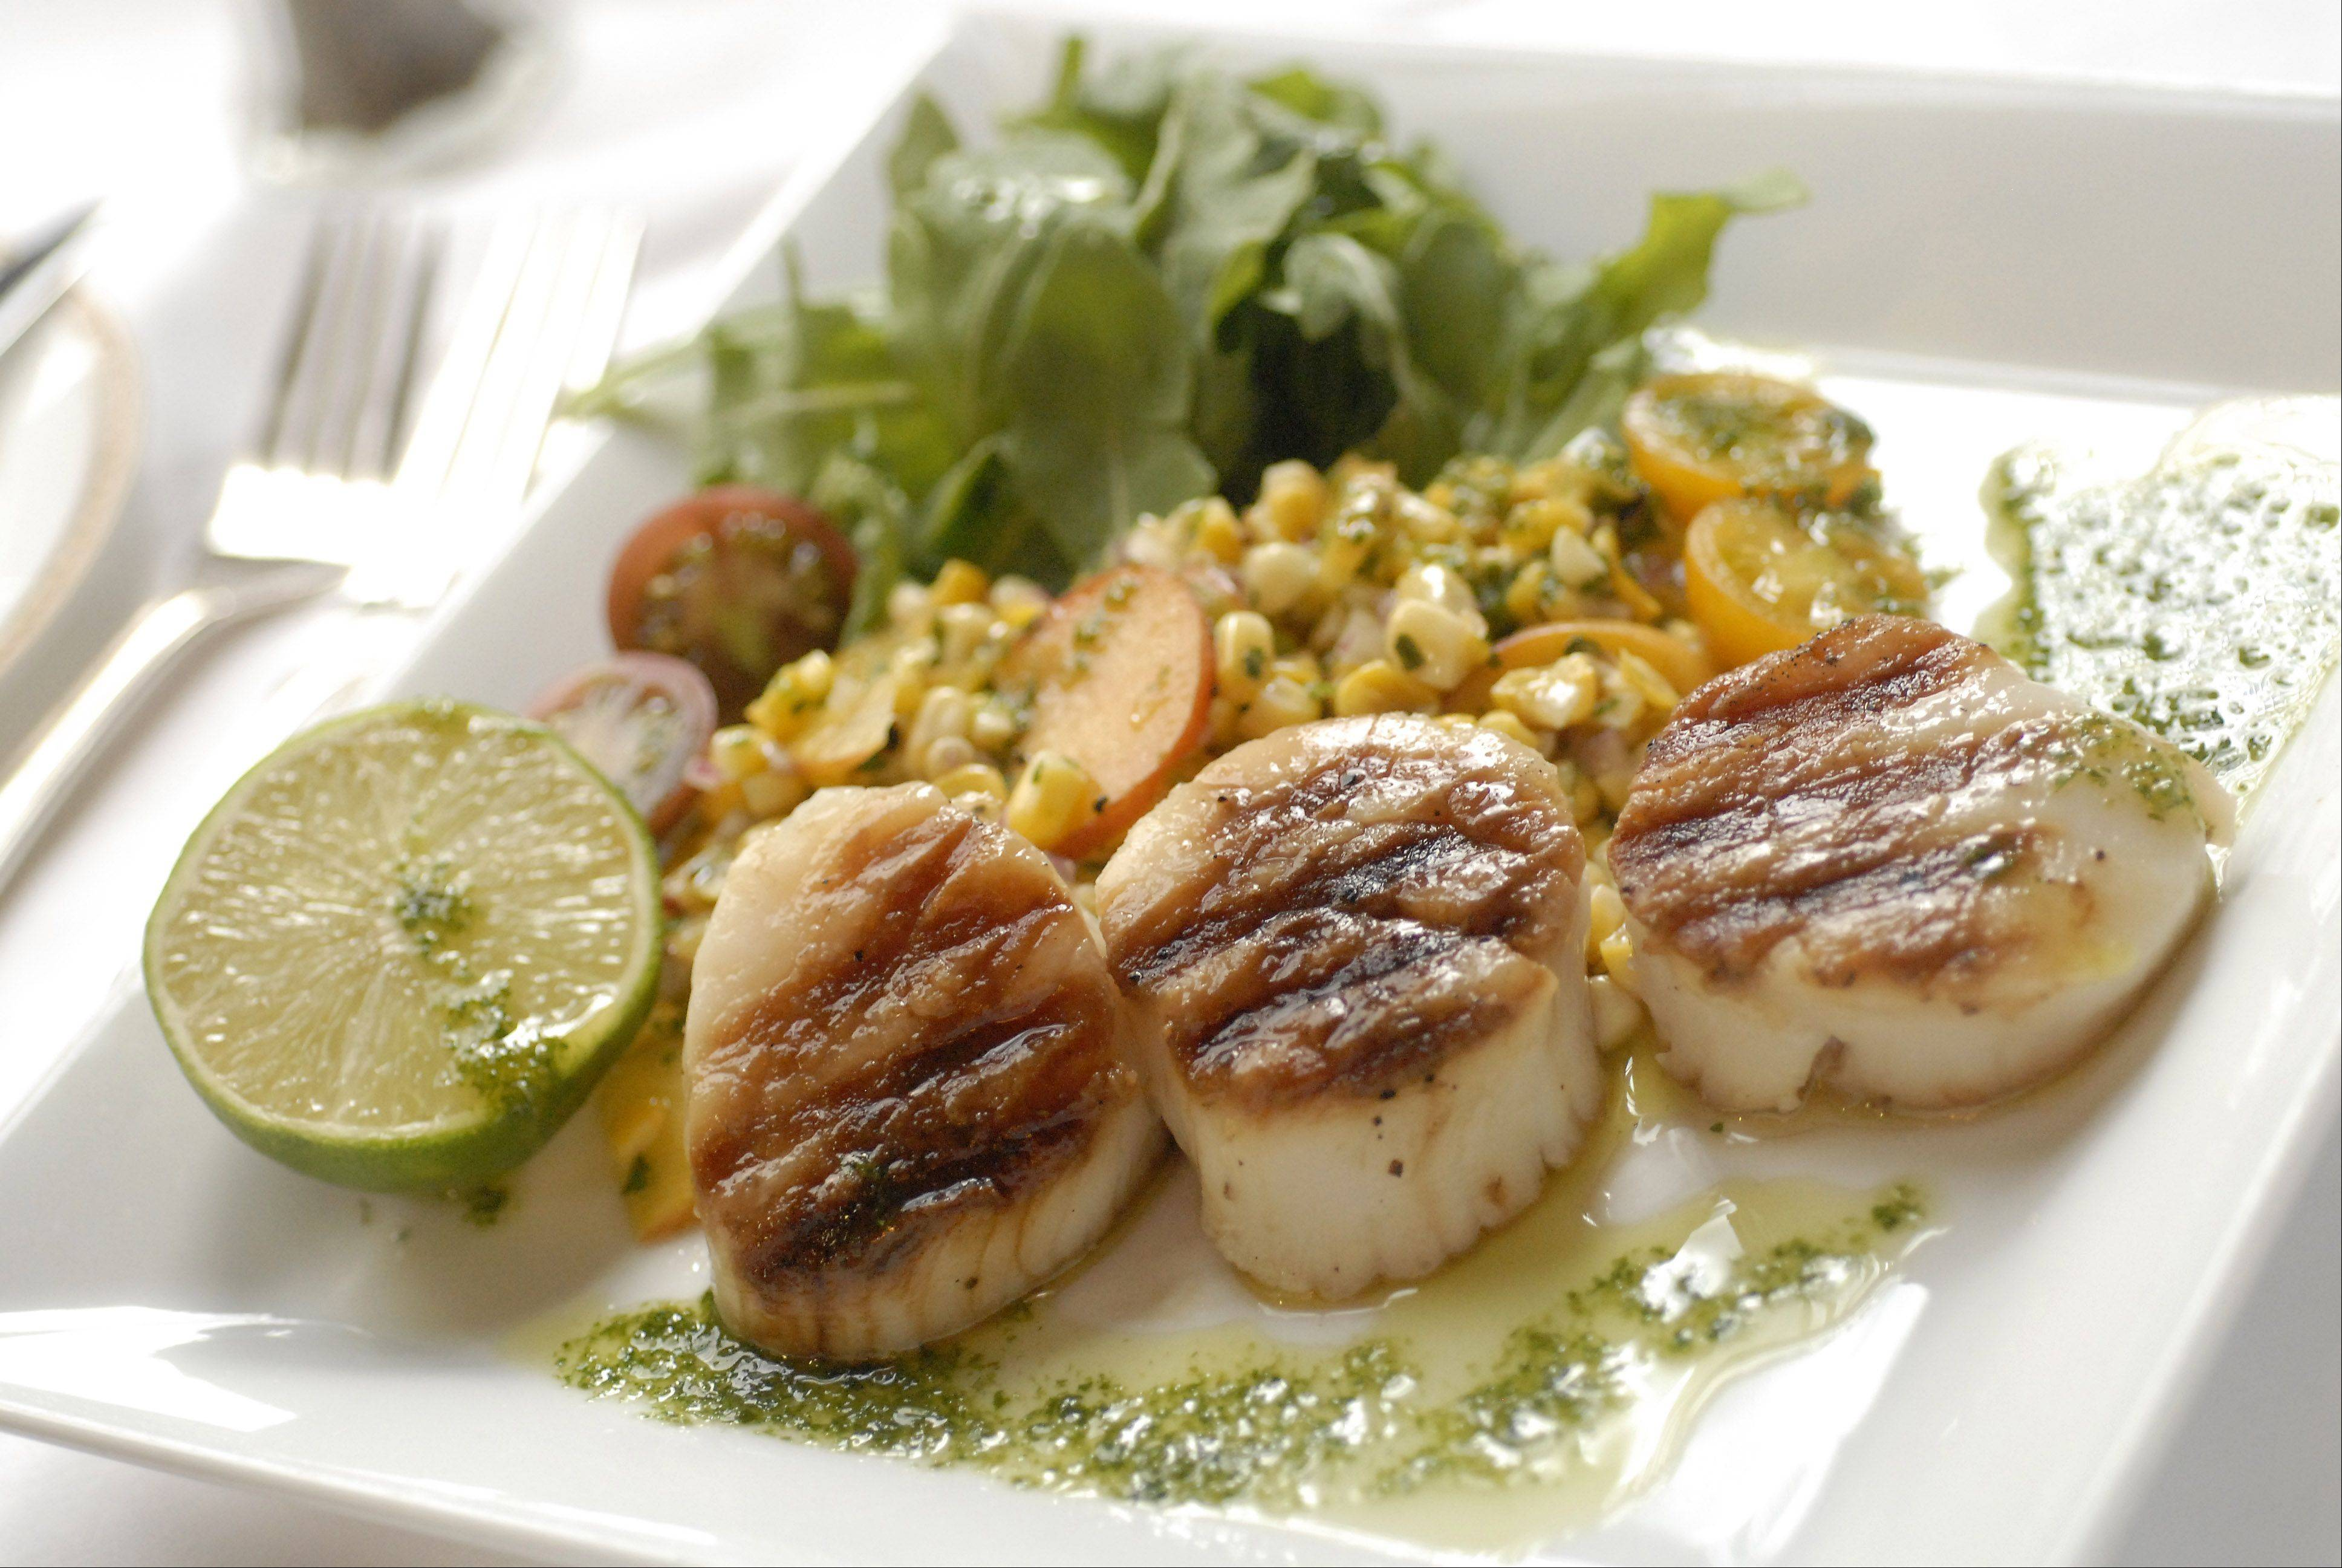 Grilled Jumbo Sea Scallops with Roasted Corn and Peach Salad